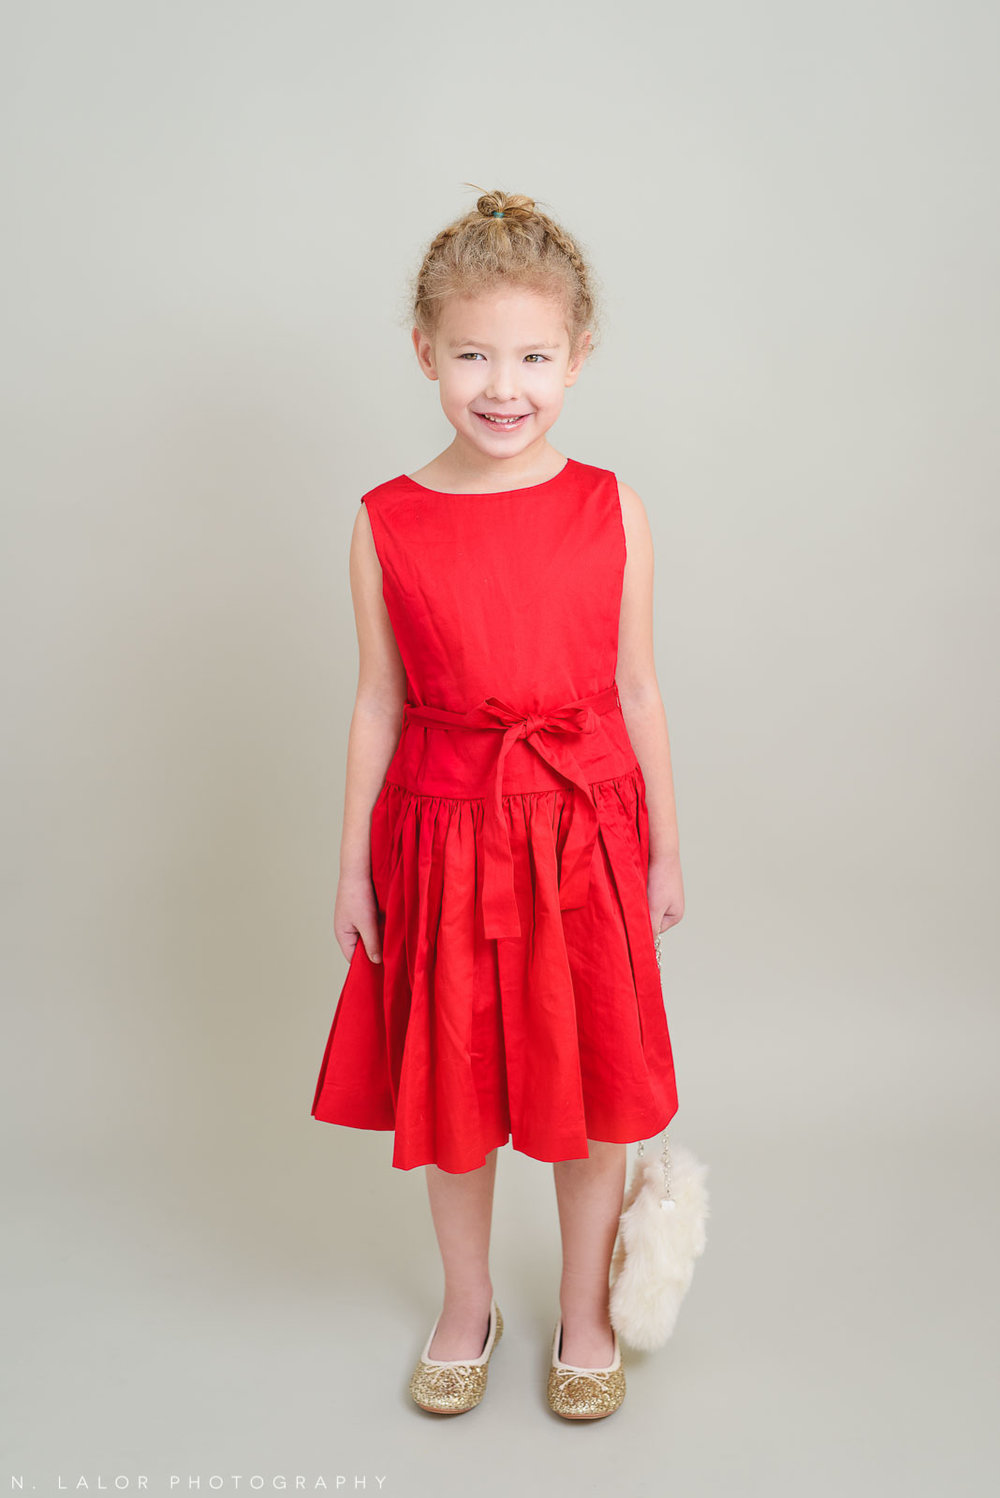 All dressed up for the Holidays. Greenwich CT Kids Photo Studio Portraits by N. Lalor Photography